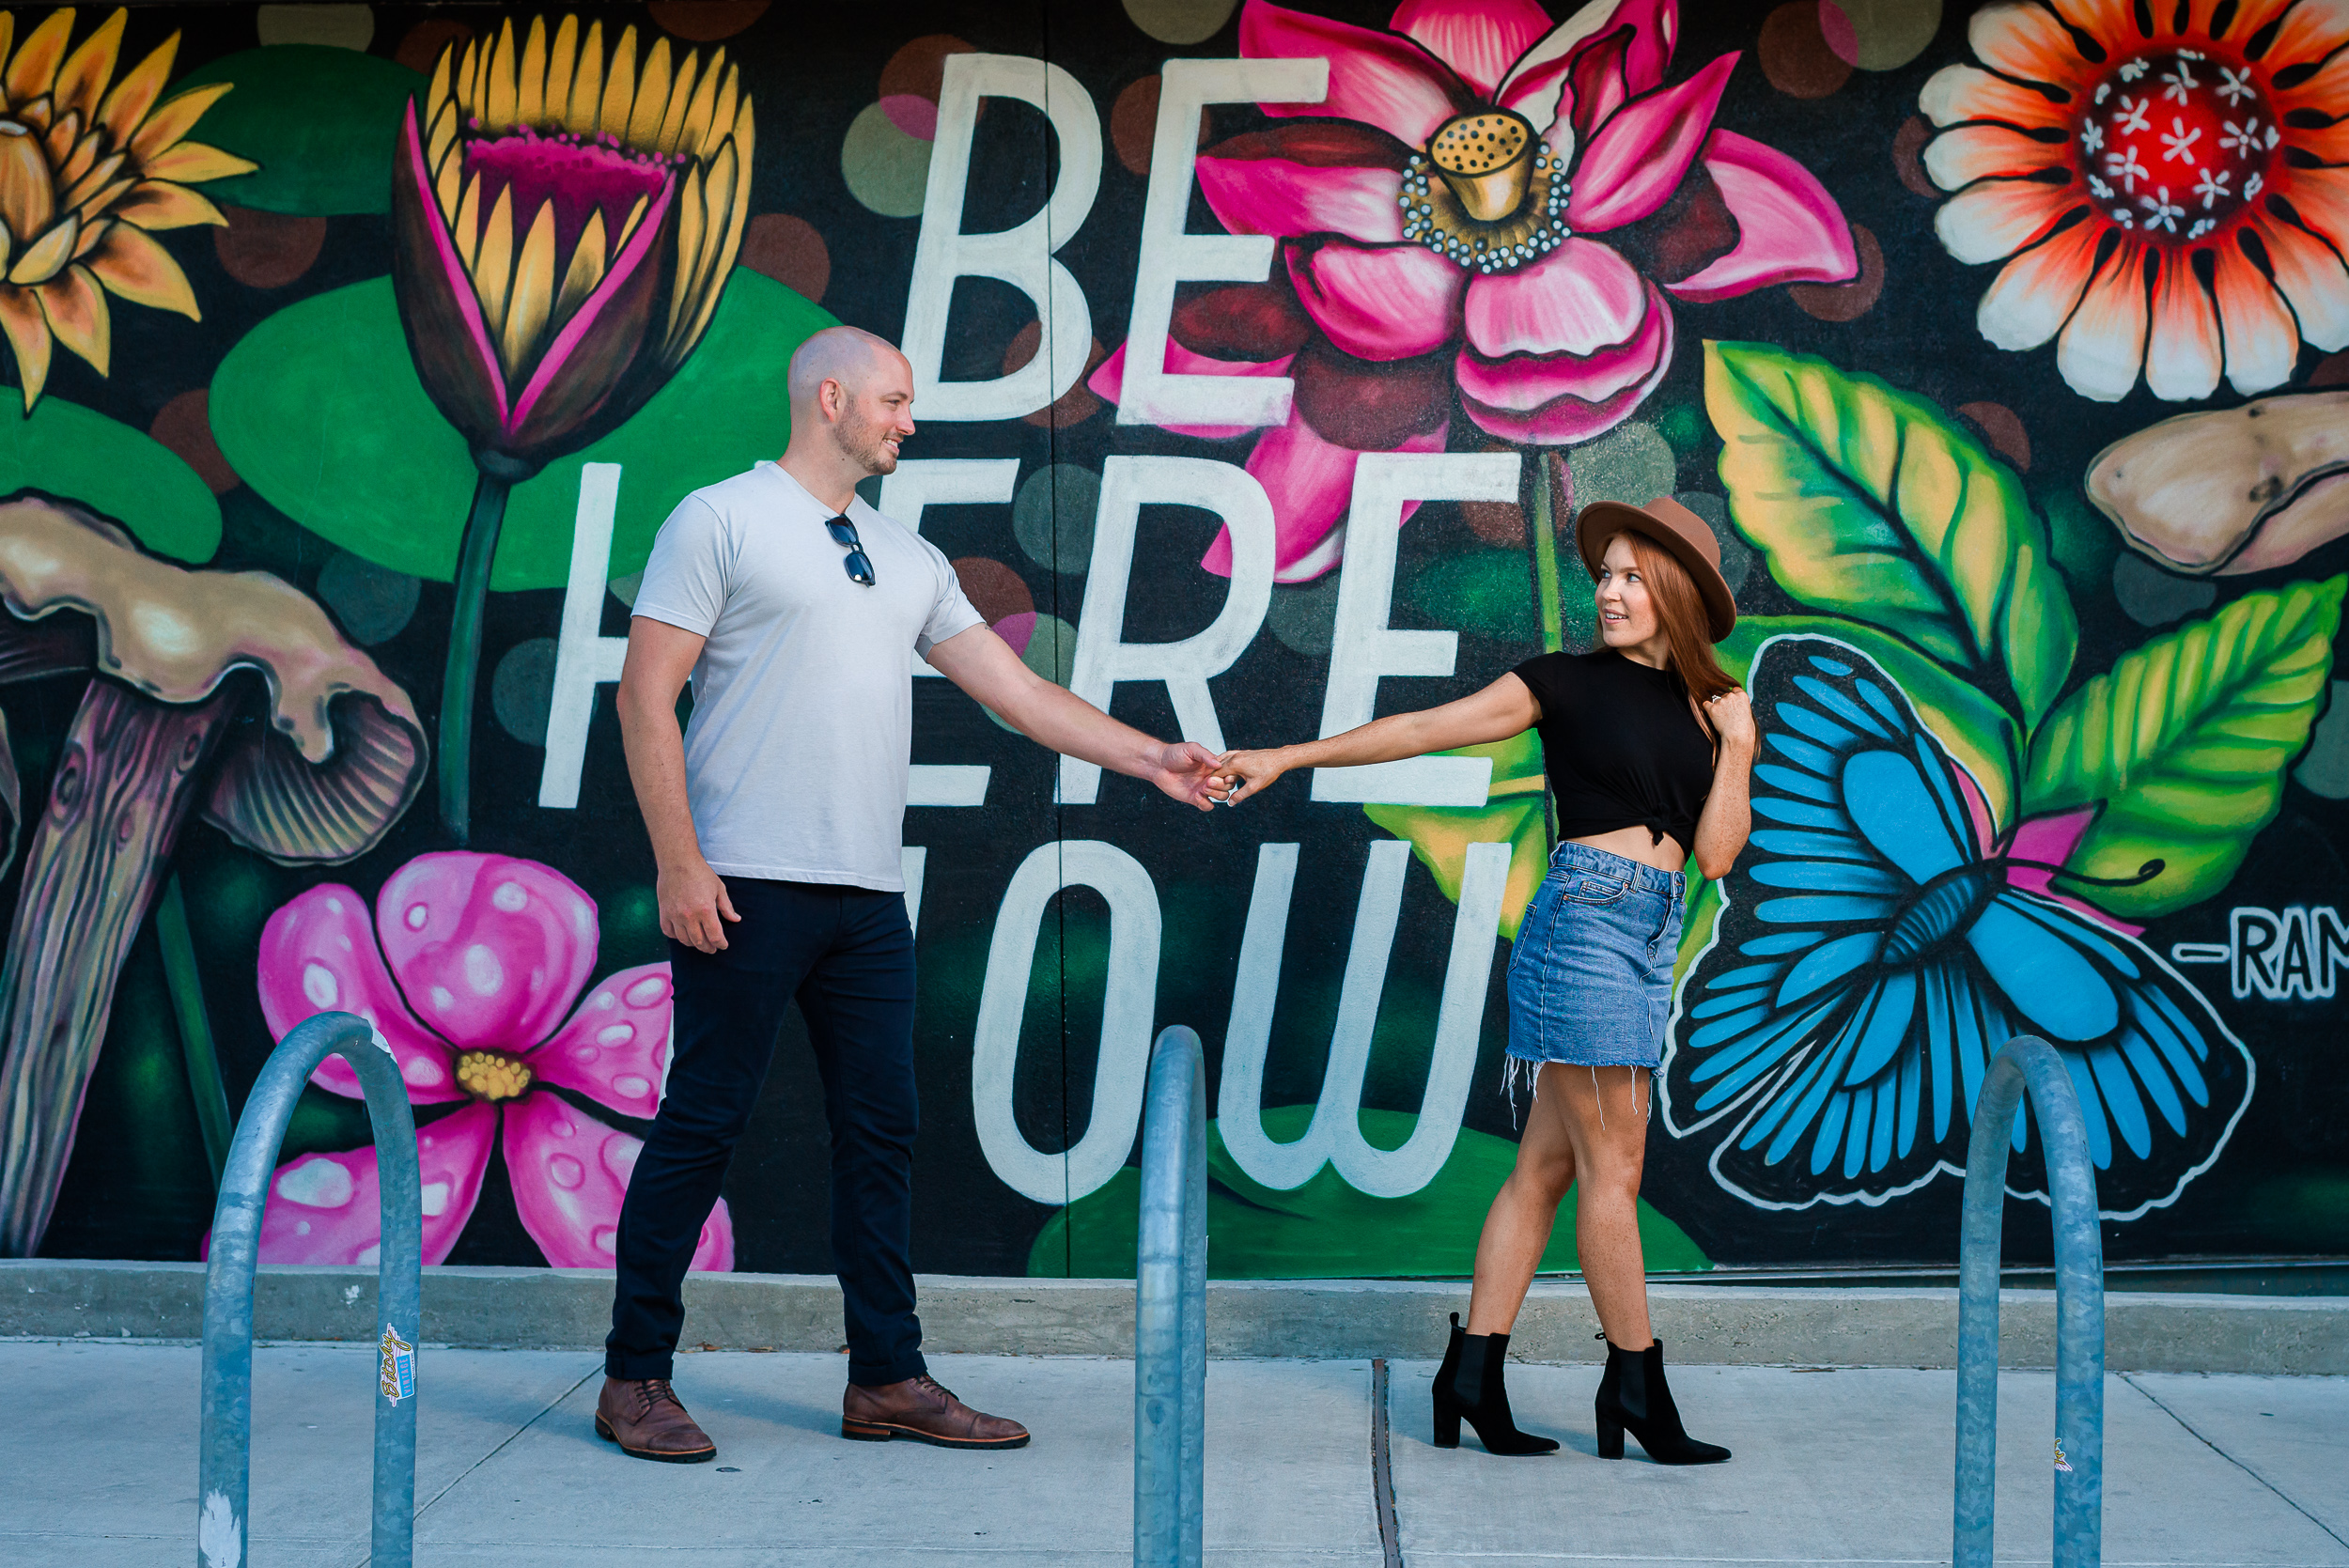 Be-Here-Now-mural-eatherly-colorful-engagement-photgraphers-austin-texas